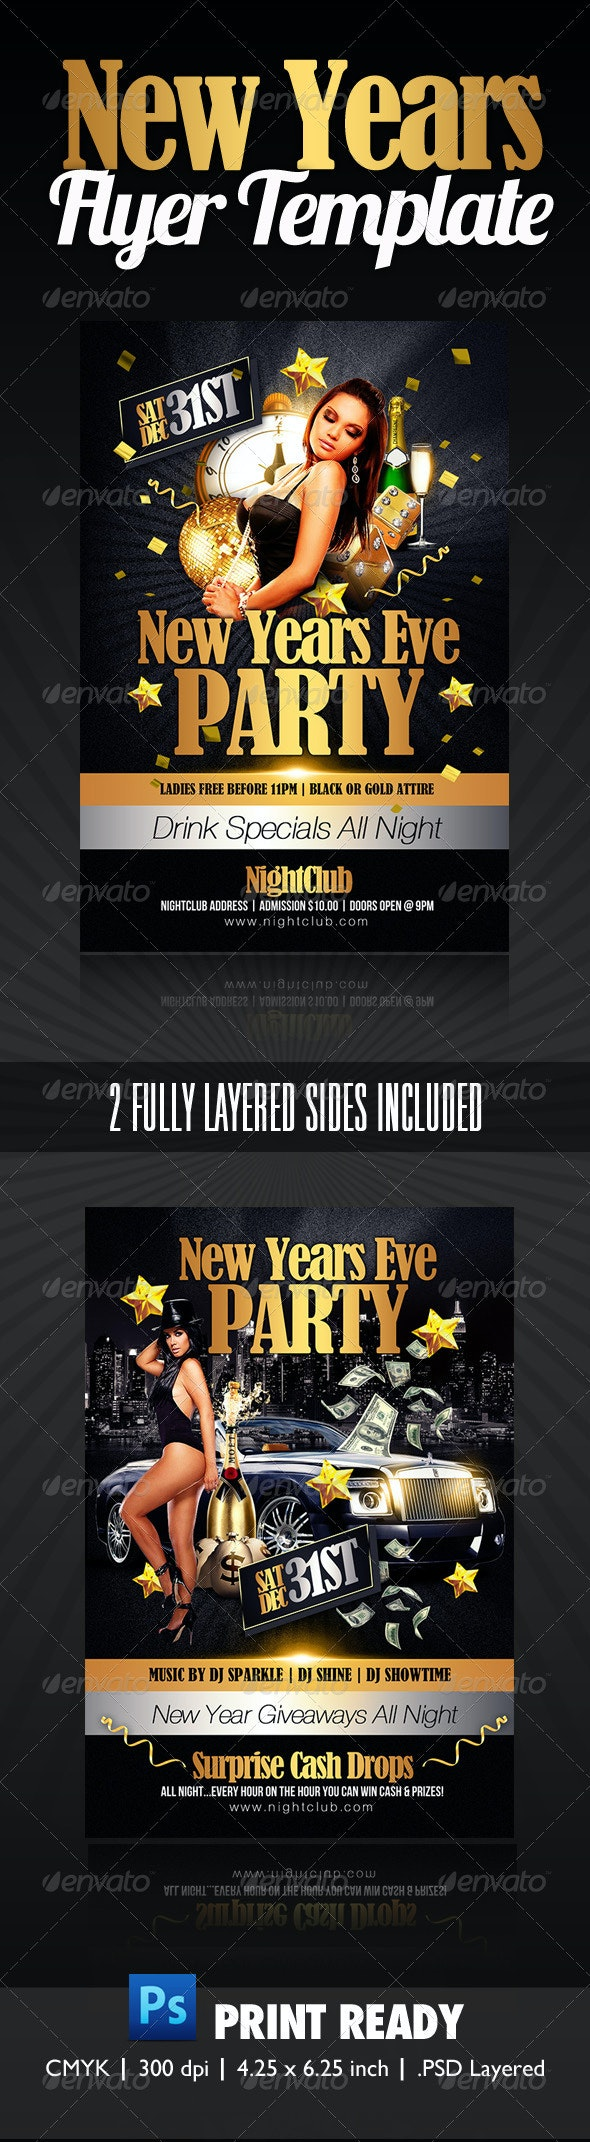 New Years Party Flyer - Clubs & Parties Events